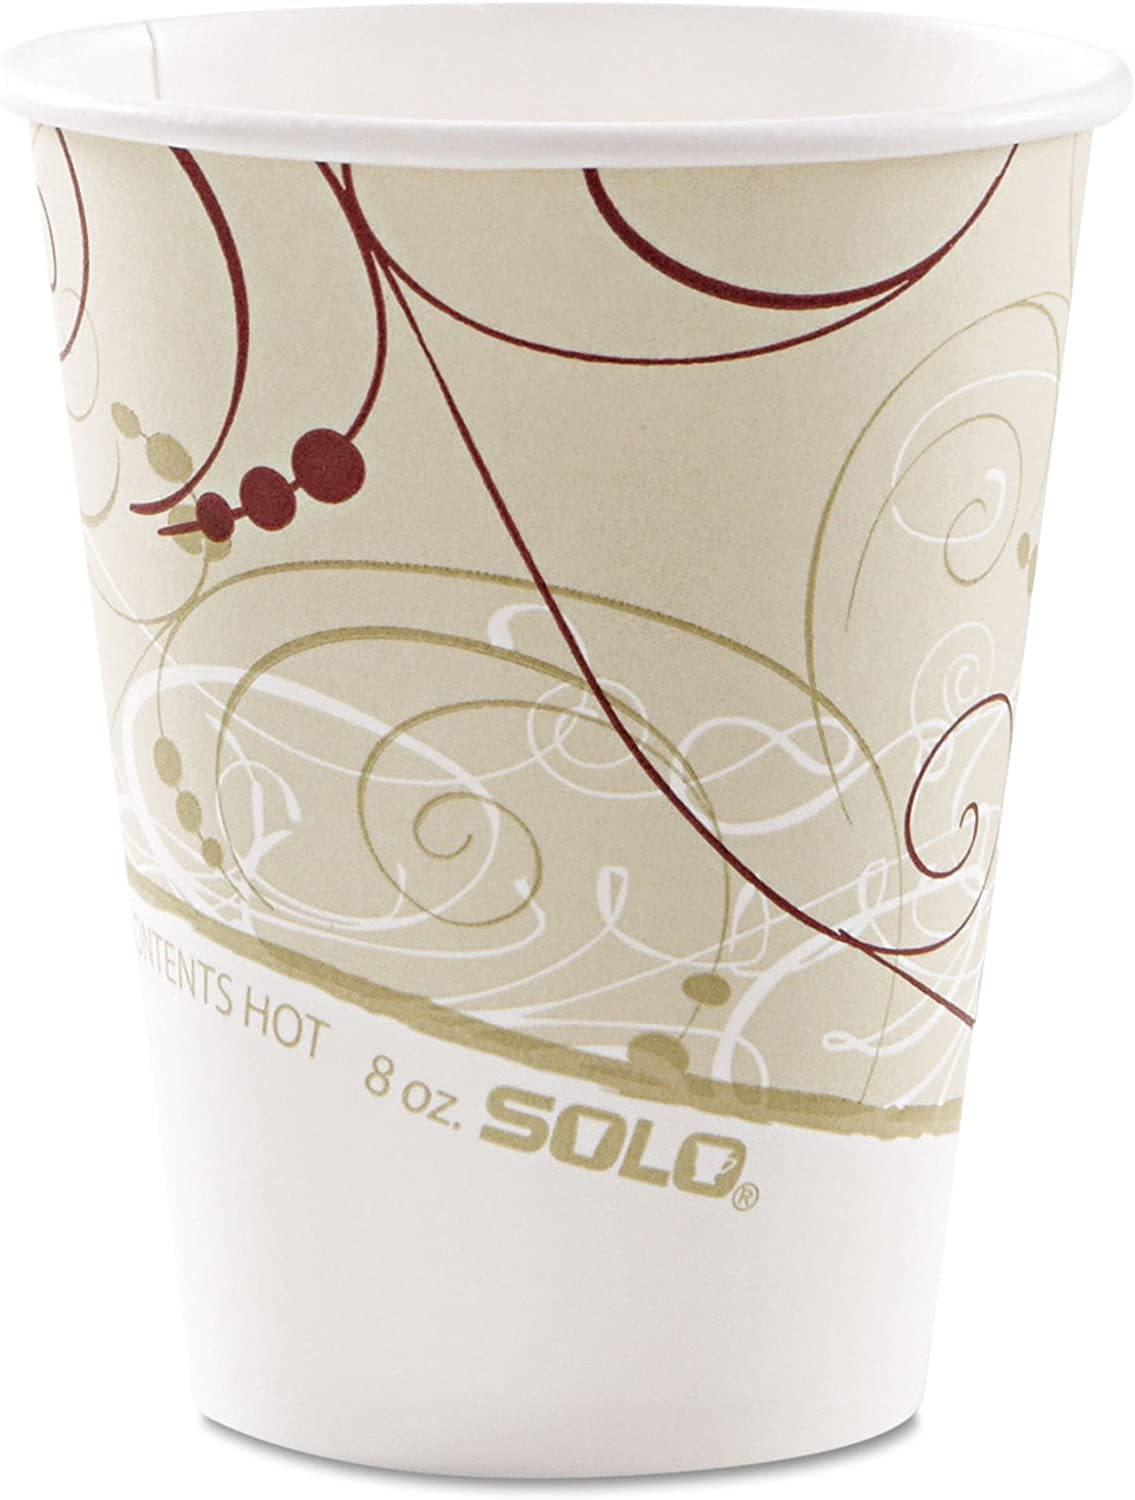 Solo Foodservice Solo 378SM-J8000 Single-Sided Poly Coated Paper Hot Cup, 8 oz Capacity, Symphony (Case of 1,000) 71d0kU2WrcLSL1500_